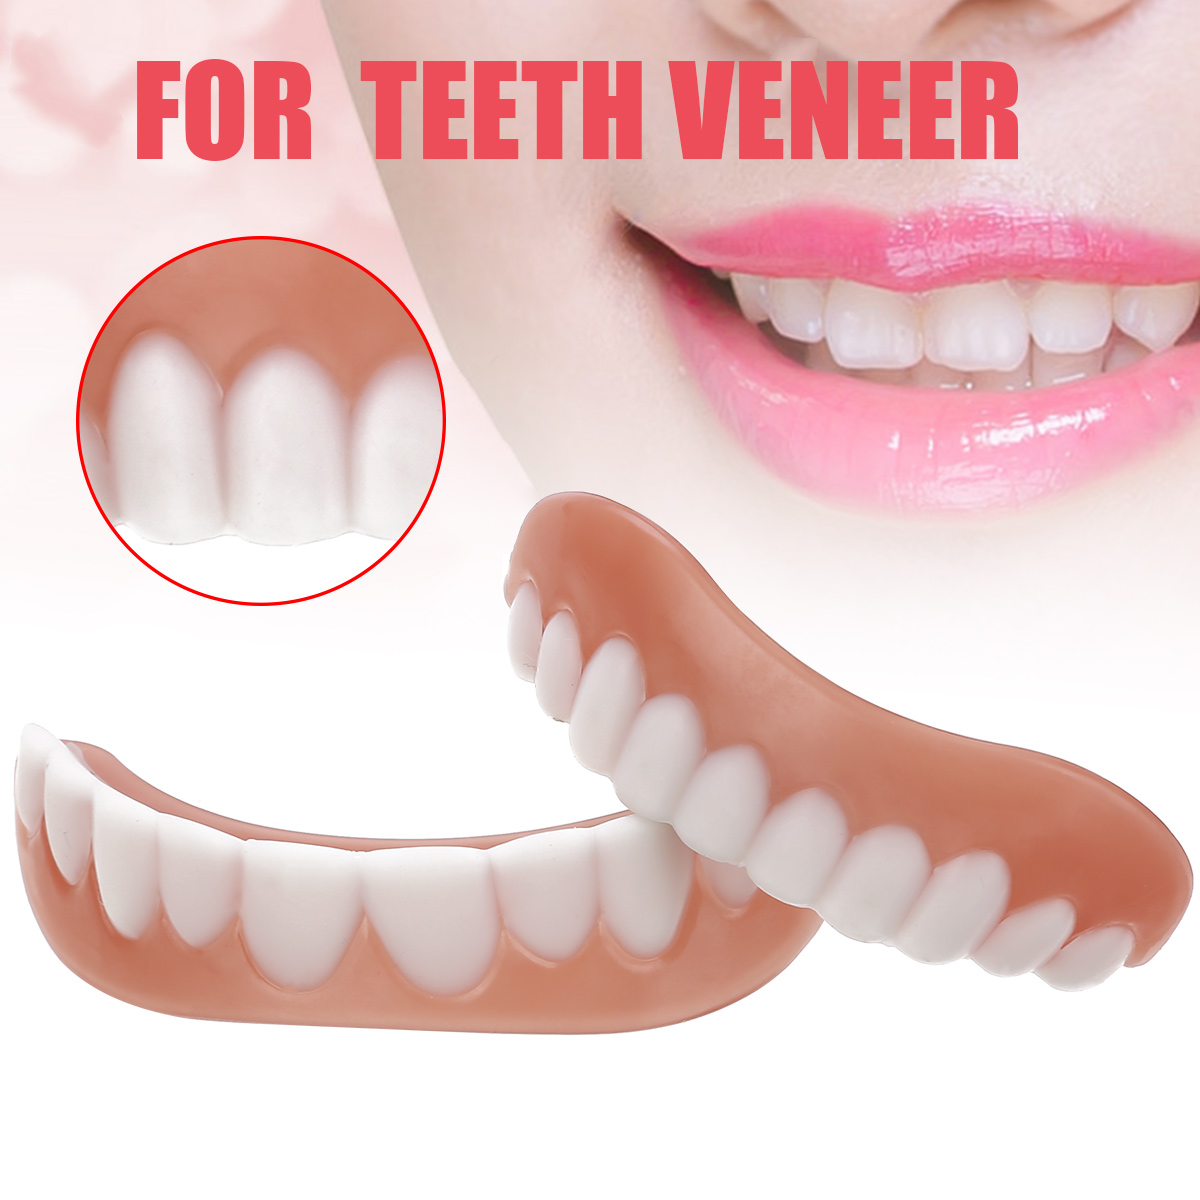 New Smile Perfect Snap Top & Bottom Veneer Cosmetic Teeth Cover Silicone Simulation Teeth Whitening Braces